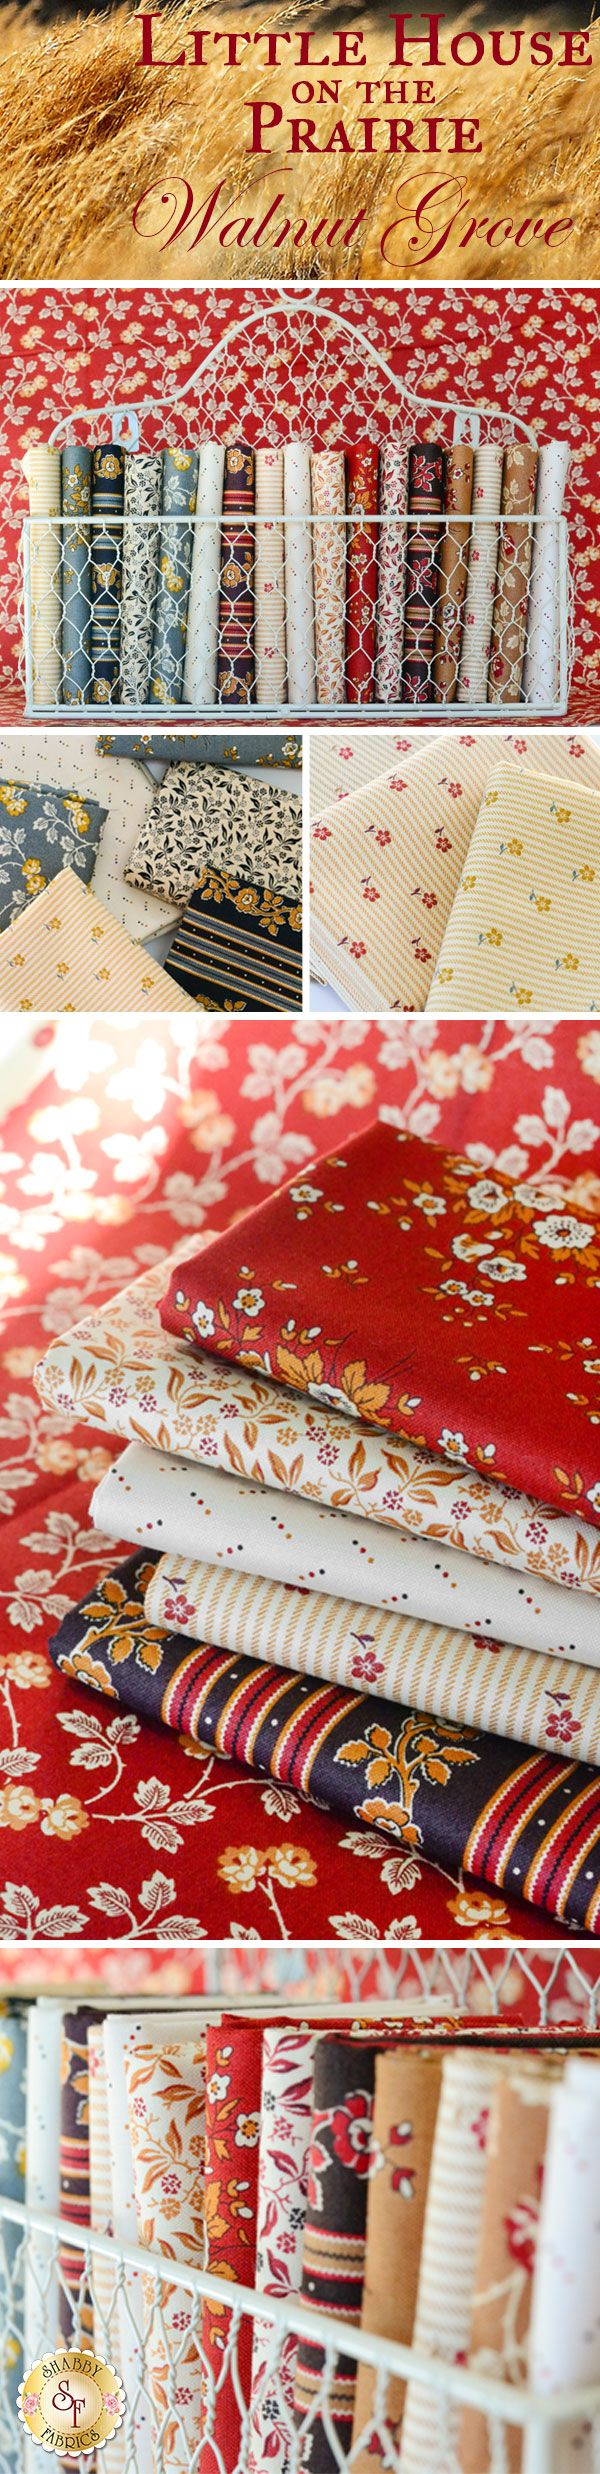 Little House On The Prairie Walnut Grove by Kathy Hall for Andover Fabrics is a floral fabric collection available at Shabby Fabrics